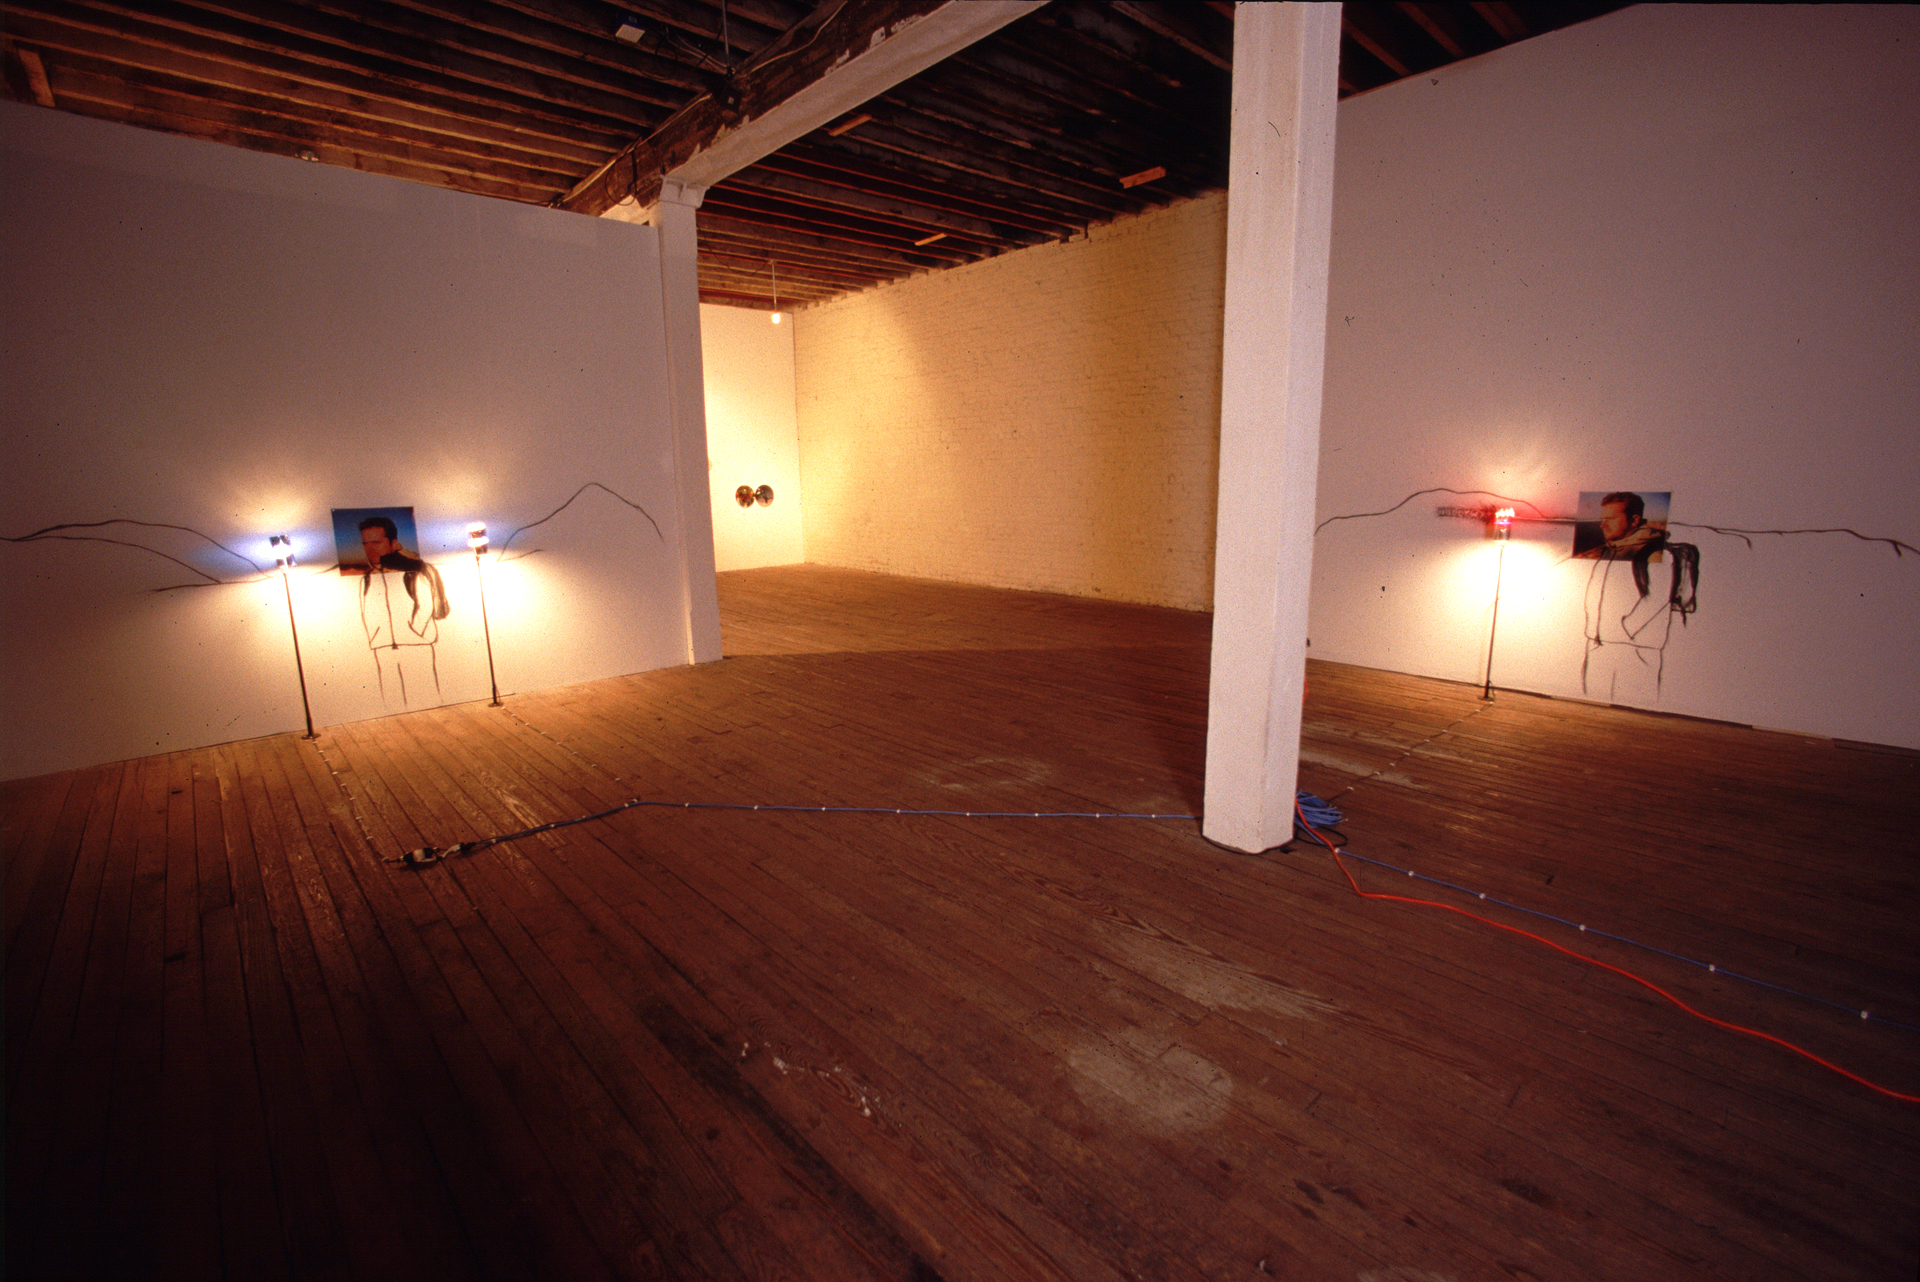 (installation view 1)